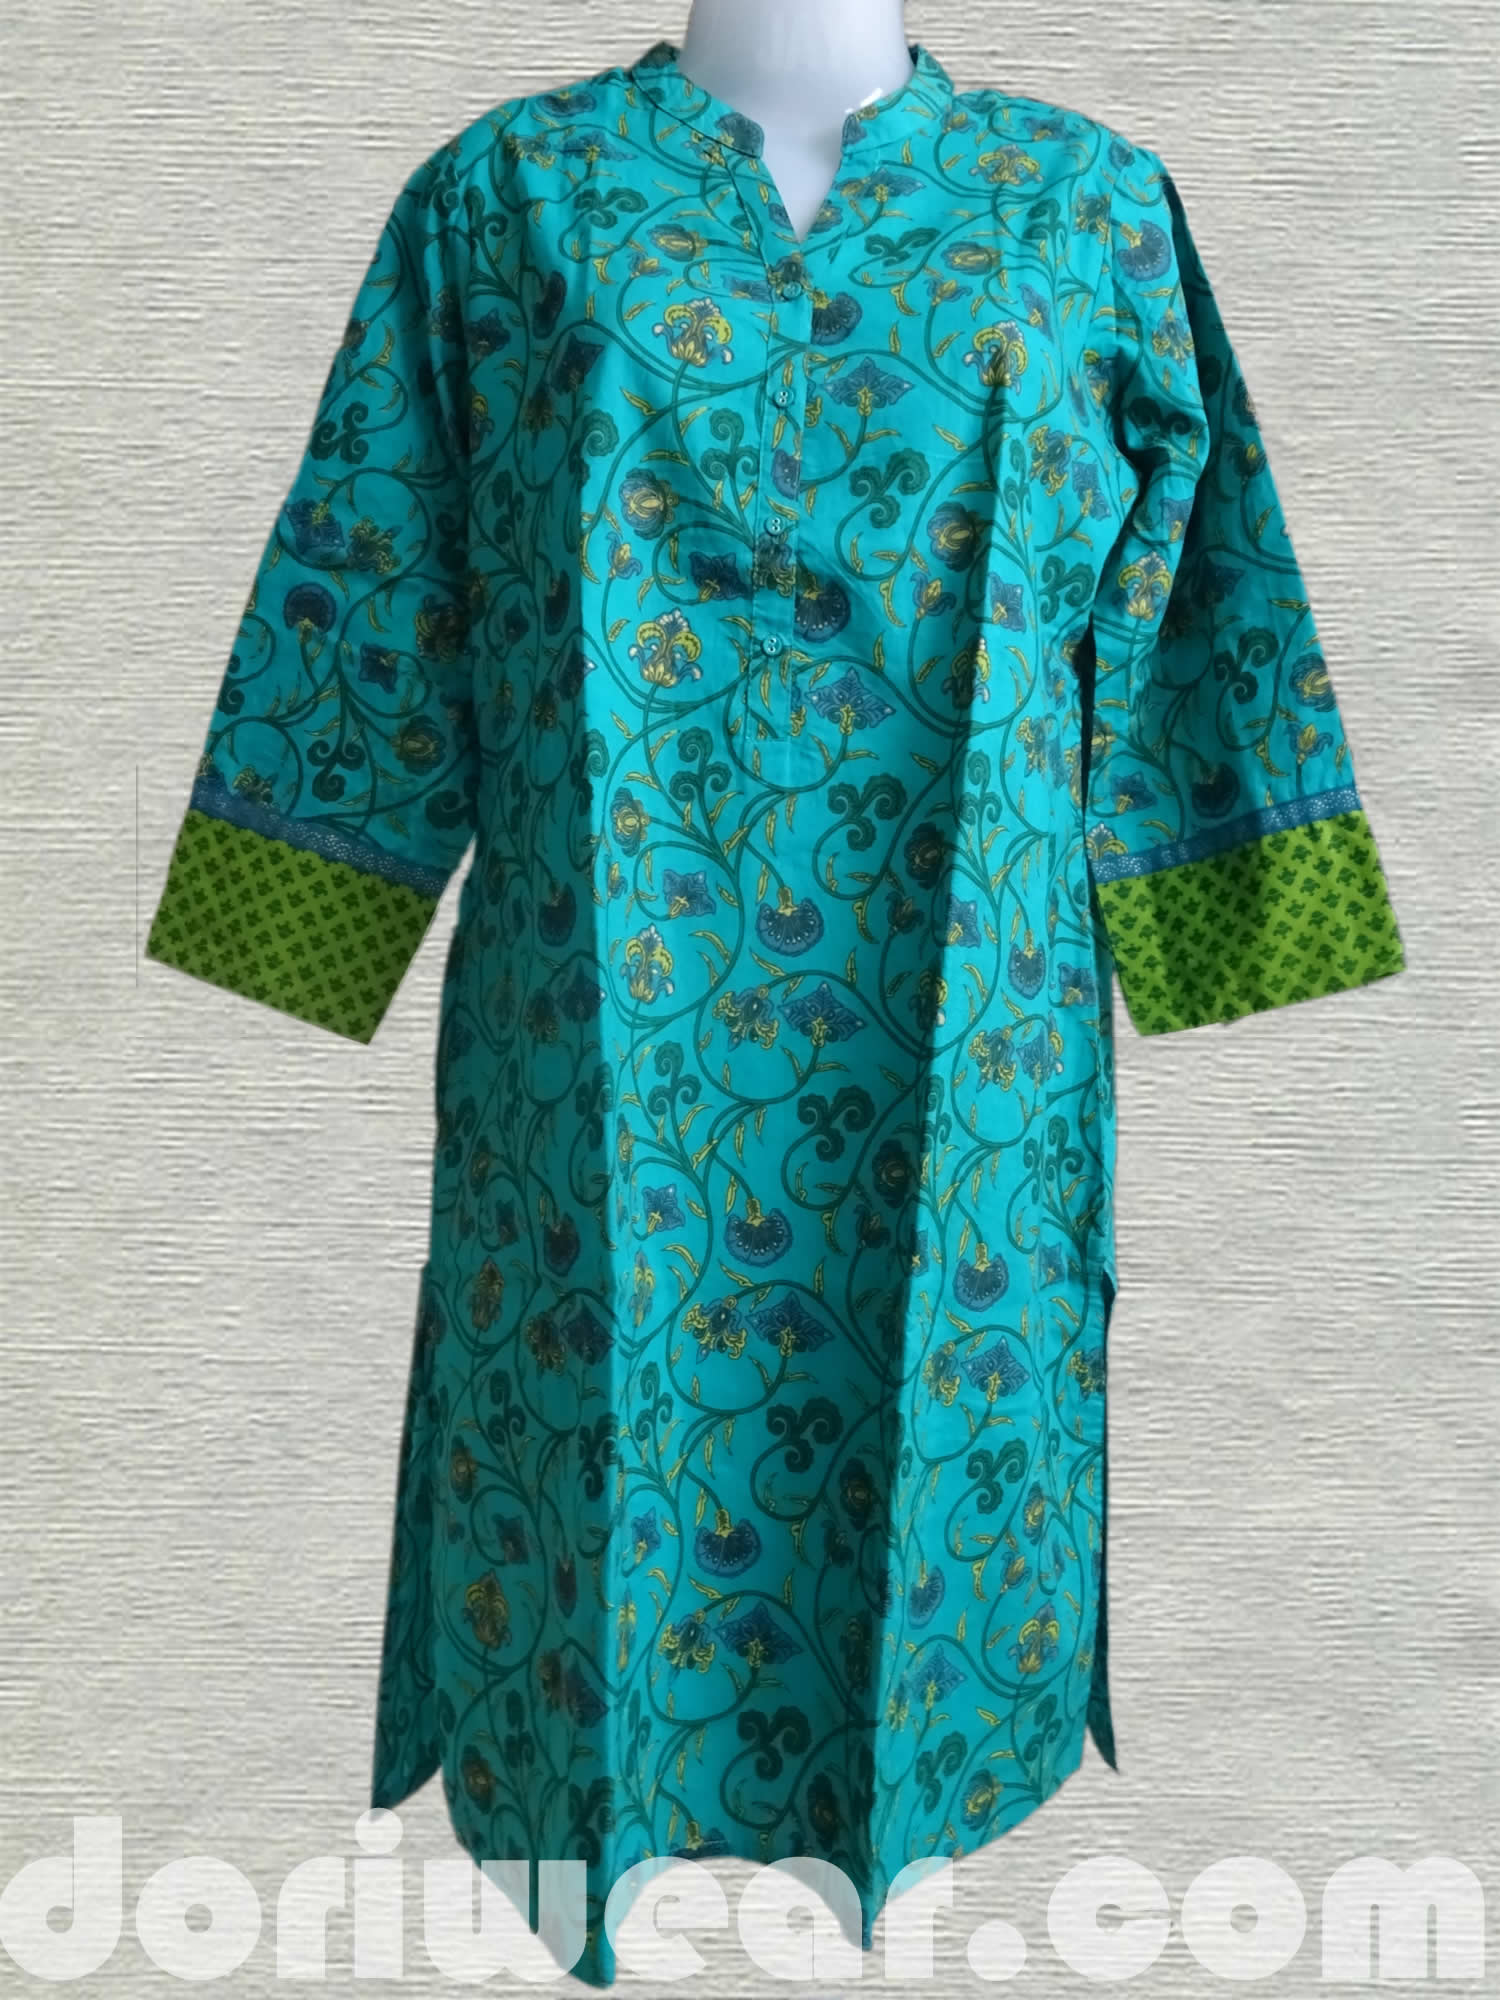 turquoise blue coour kurtis online,turquoise kurtis online sale, utsa turquoise kurti by westside, turquoise kurtas for ladies online